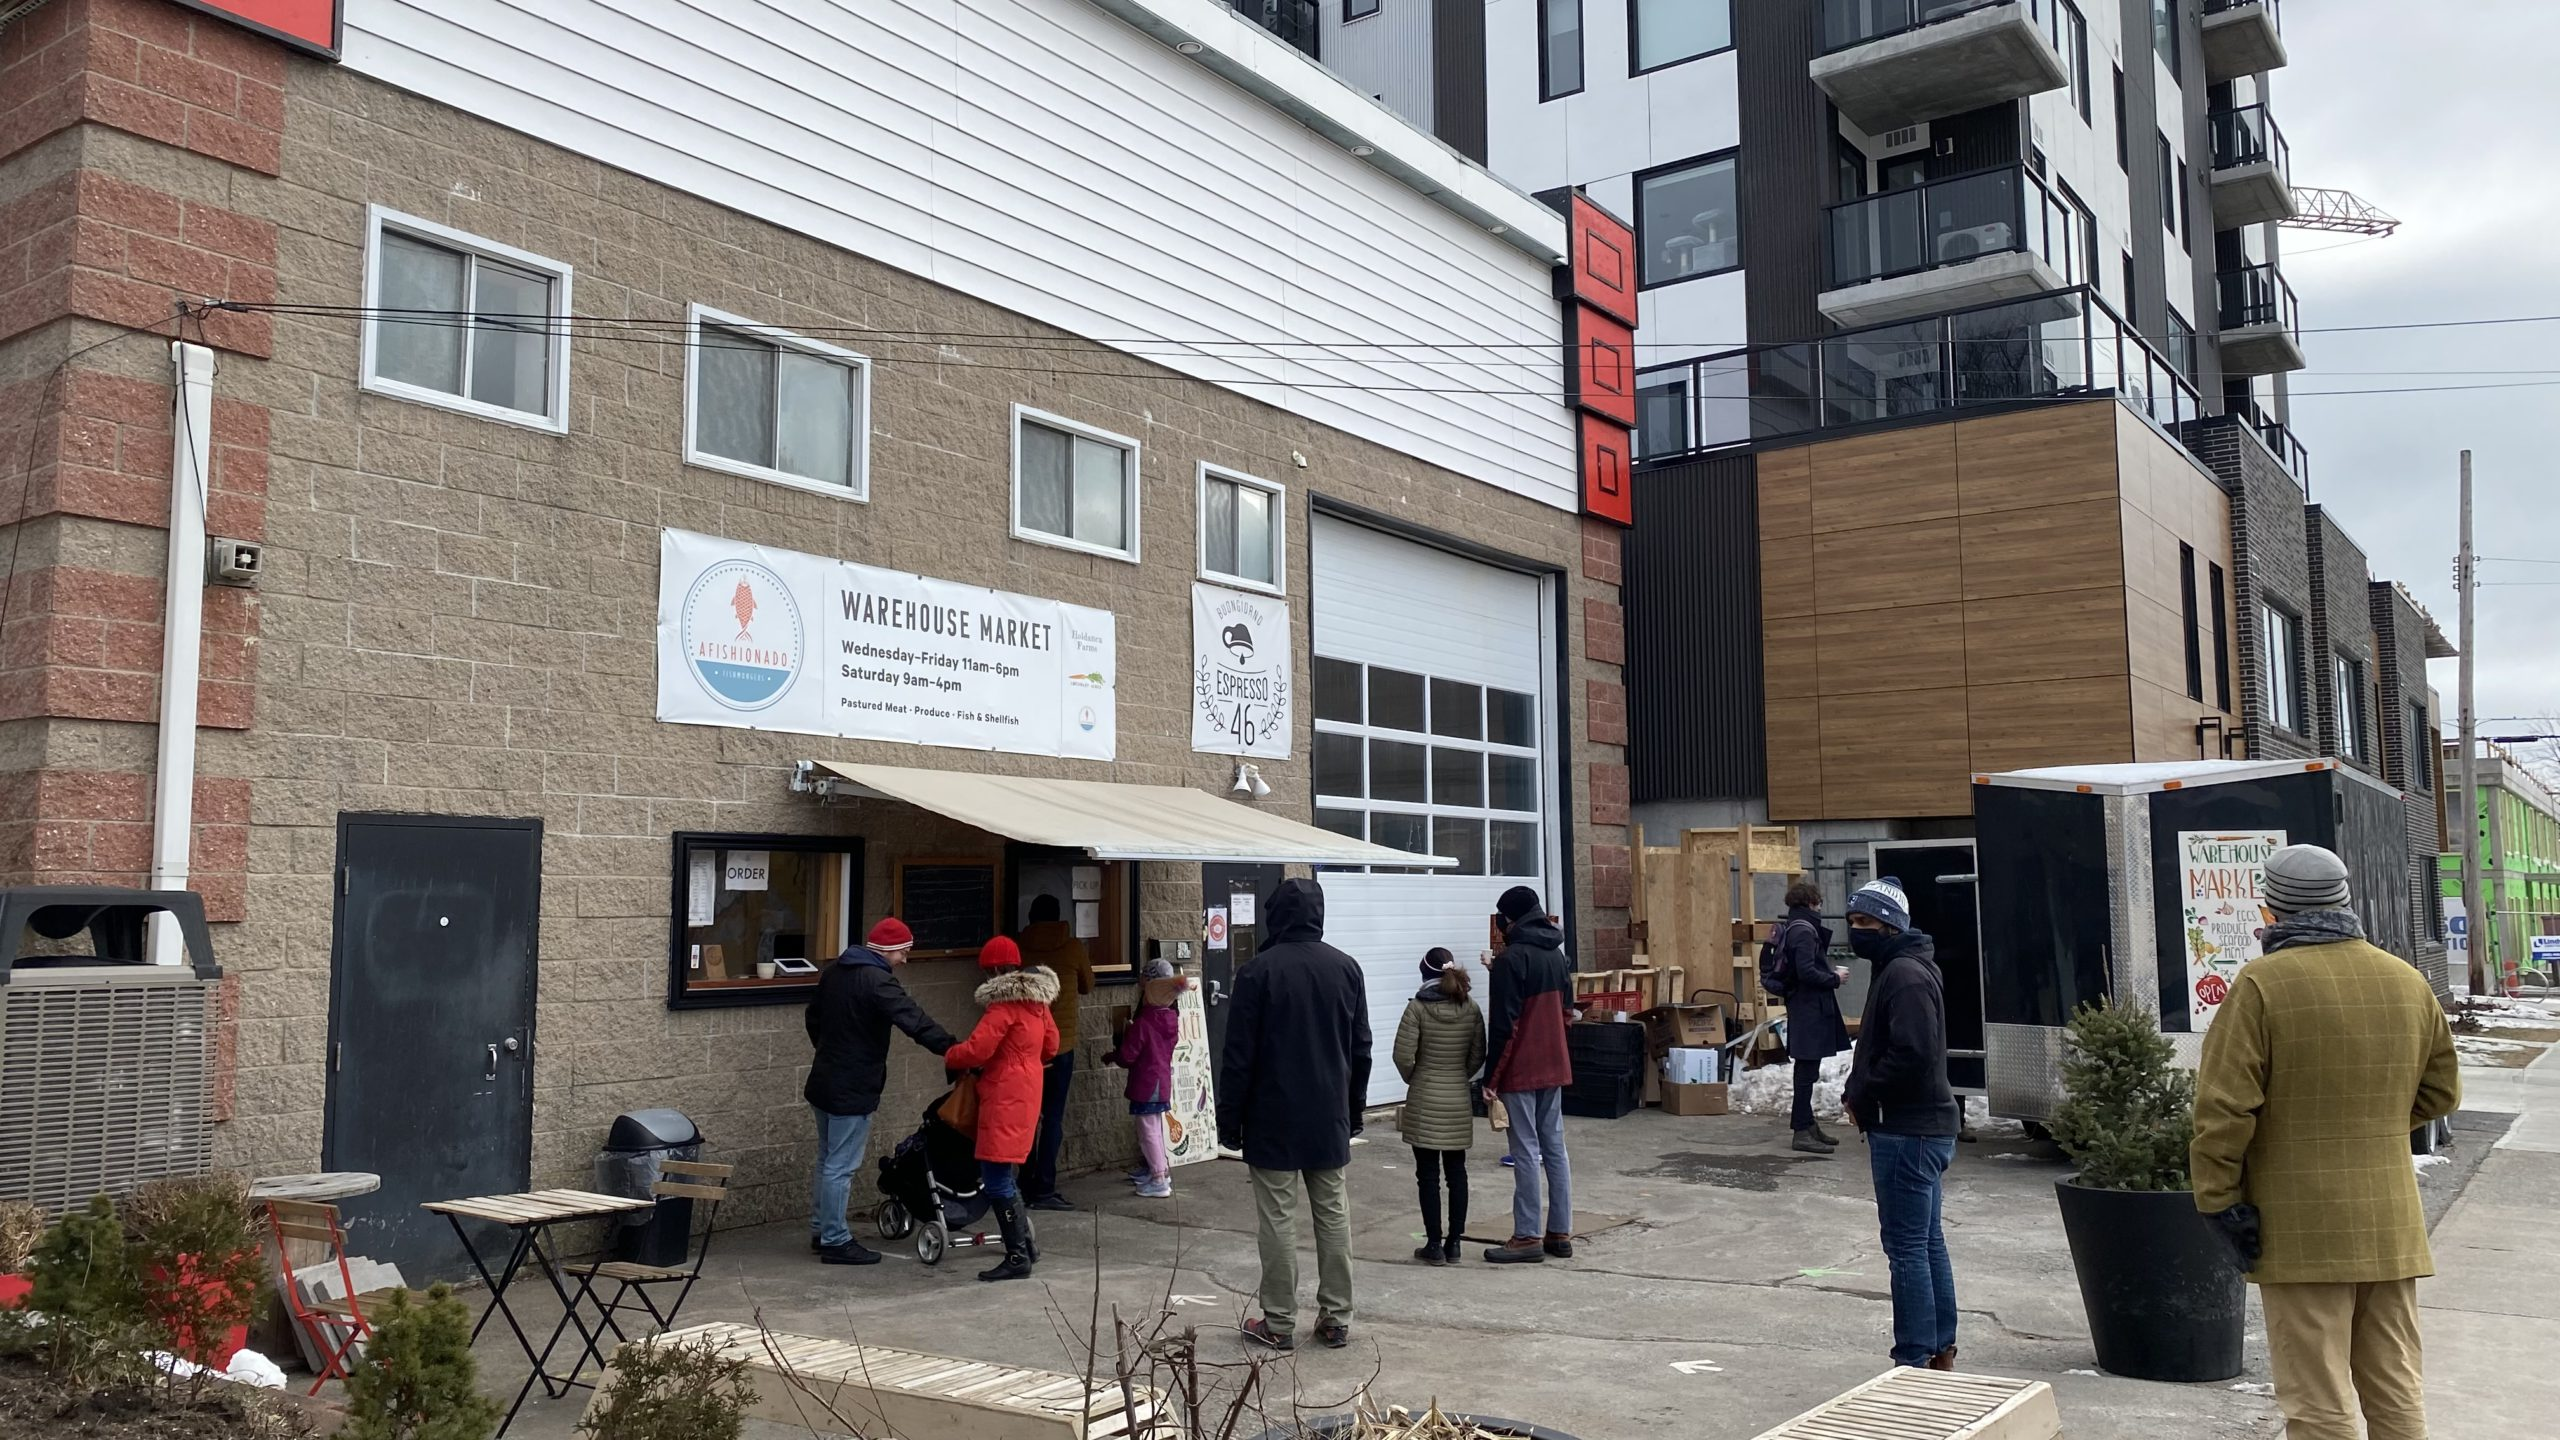 A socially-distanced crowd gathers at Warehouse Market on Saturday, January 30th.